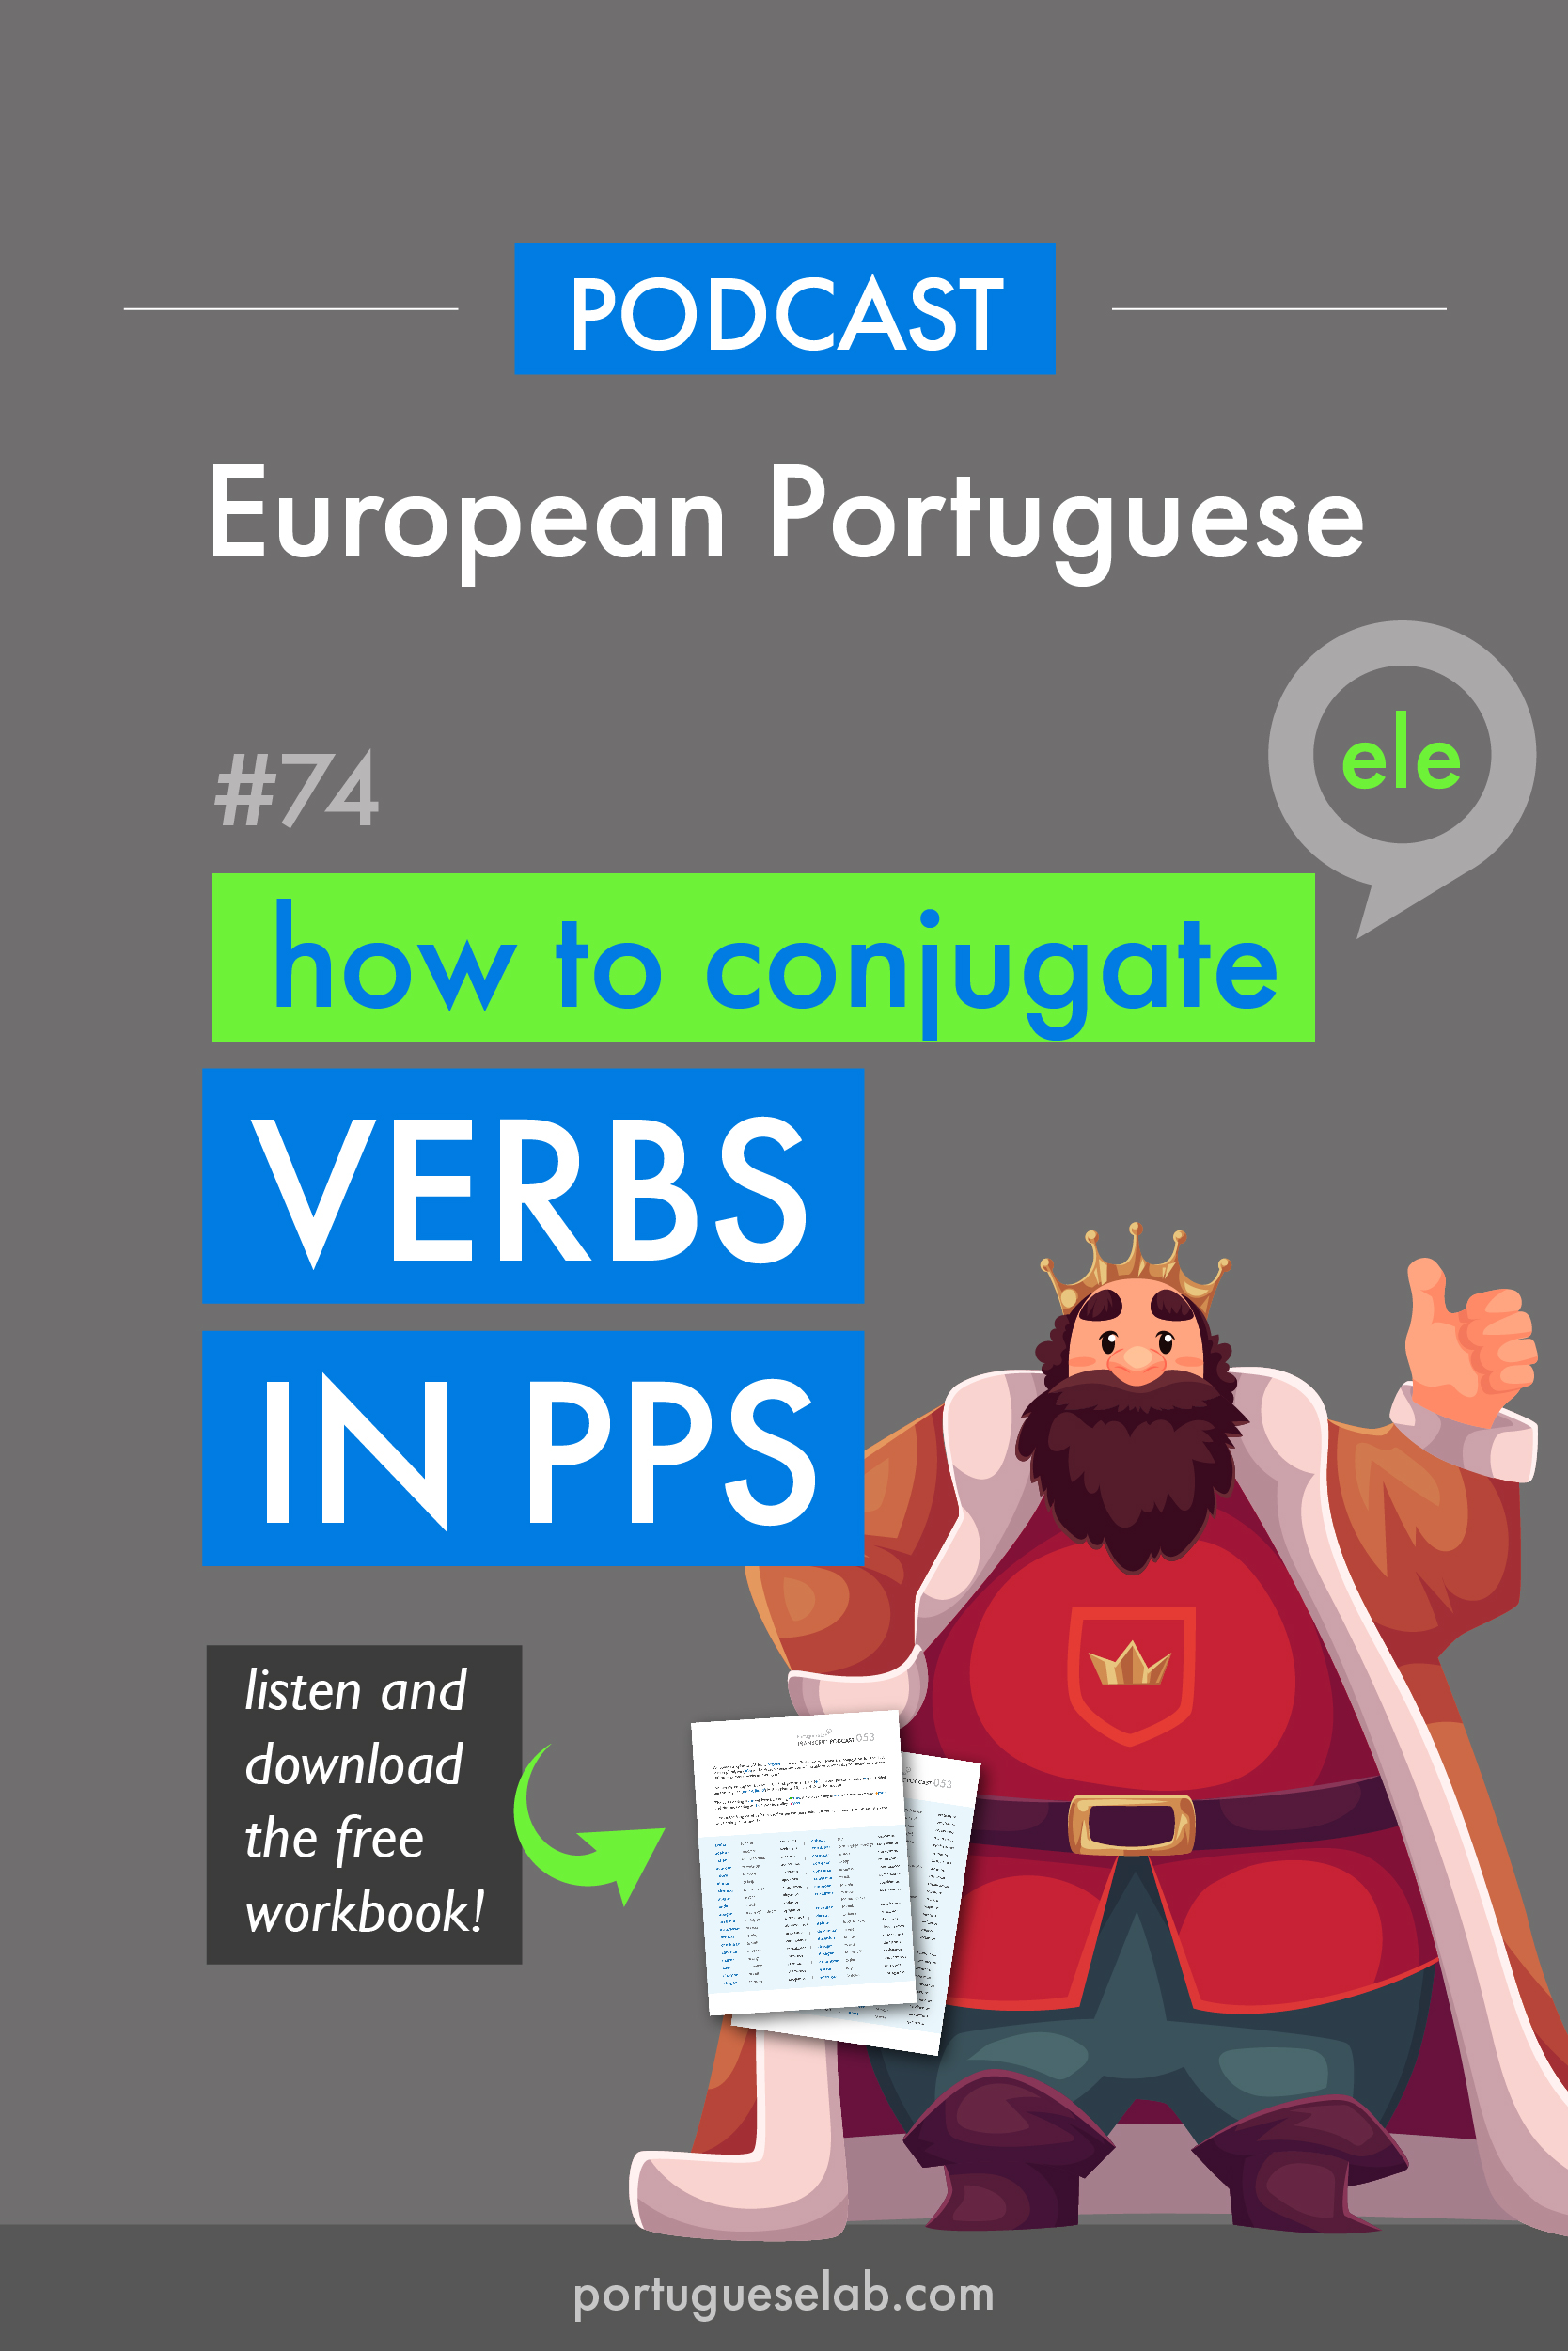 Portuguese Lab Podcast - European Portuguese - 74 - Verbs in the past - ele-ela.jpg